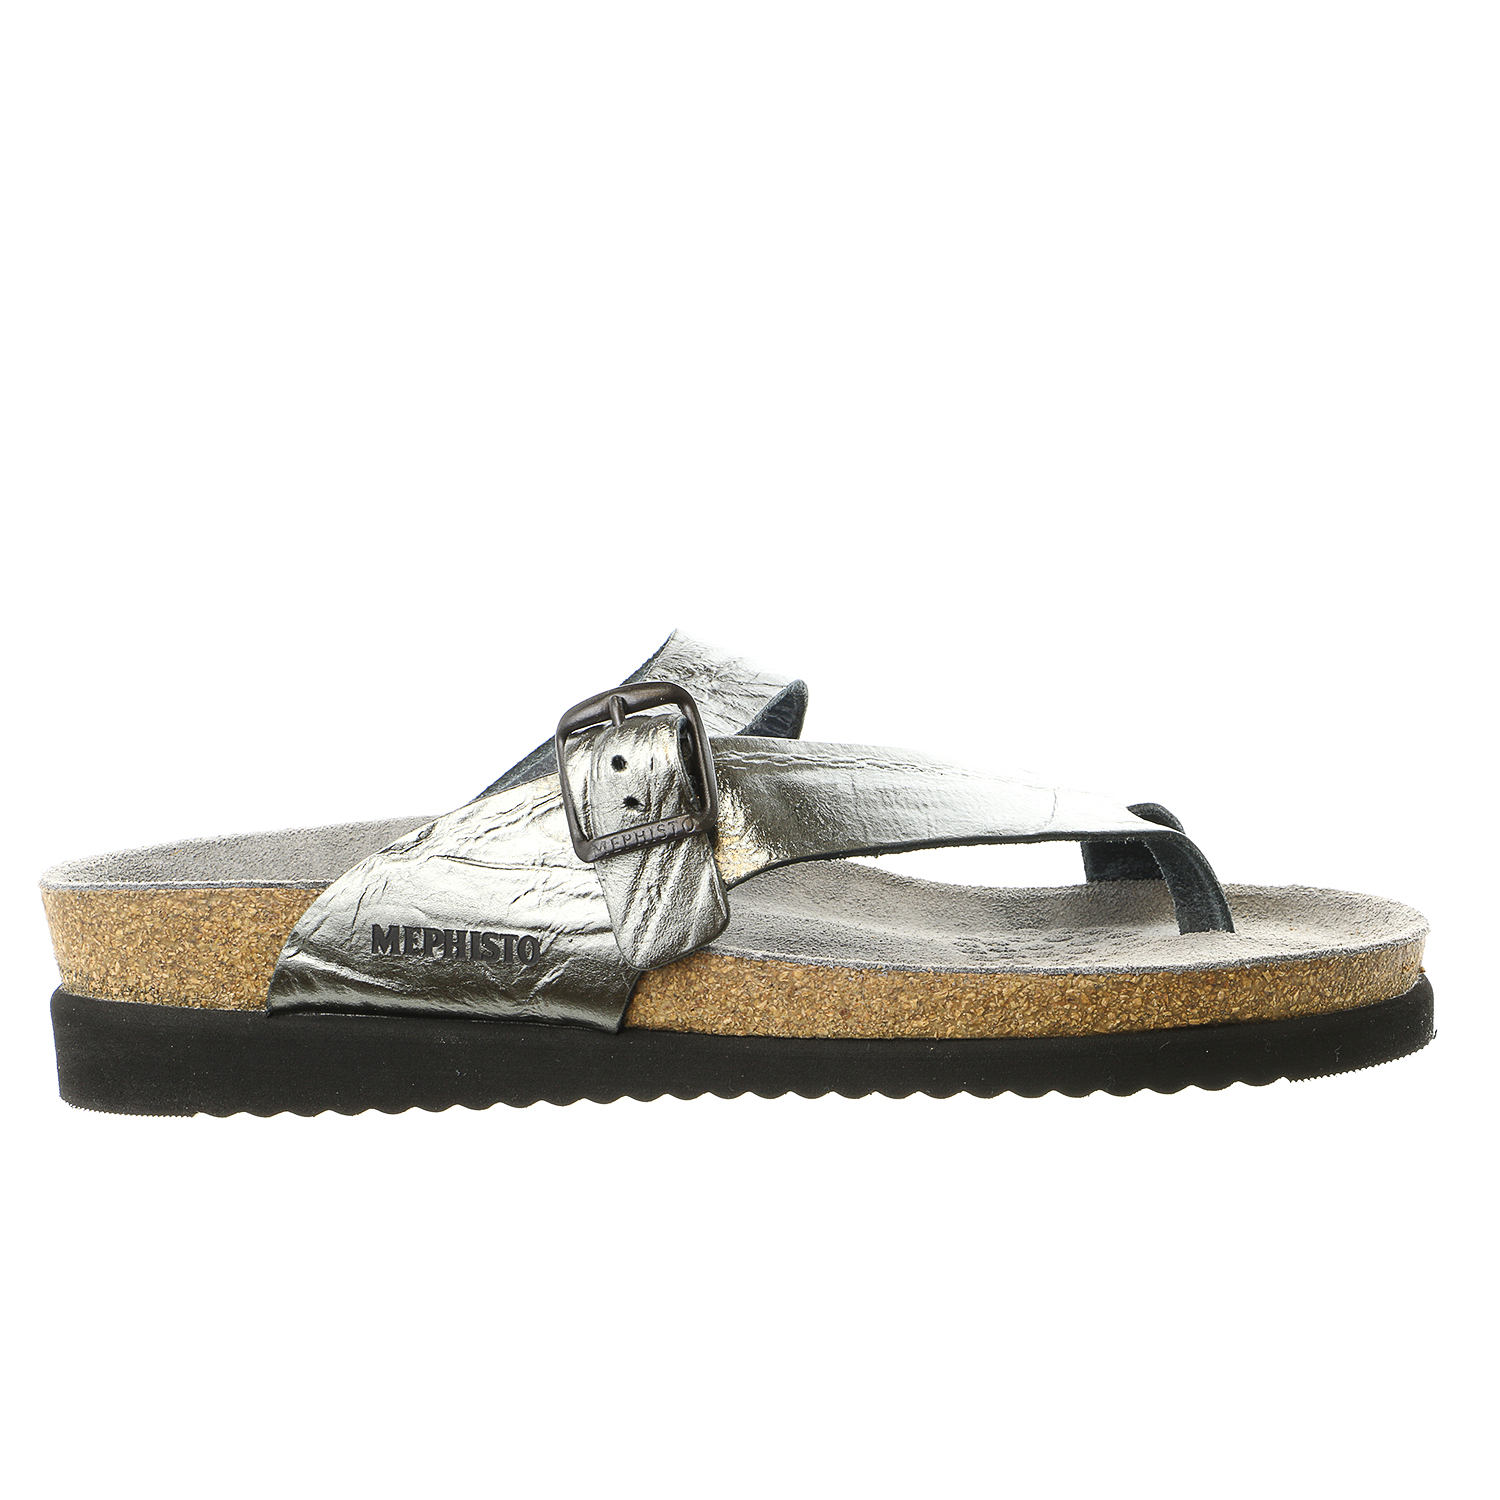 Mephisto Helen Adjustable Strap Thong Sandal Shoe Womens by Mephisto